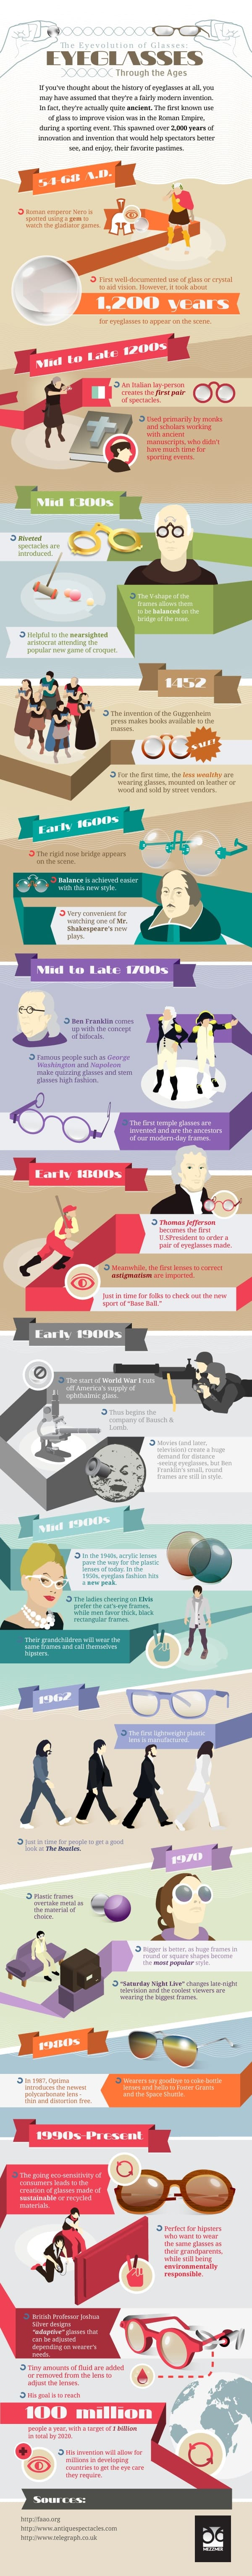 inforgraphic-on-History-of-Eyeglasses11